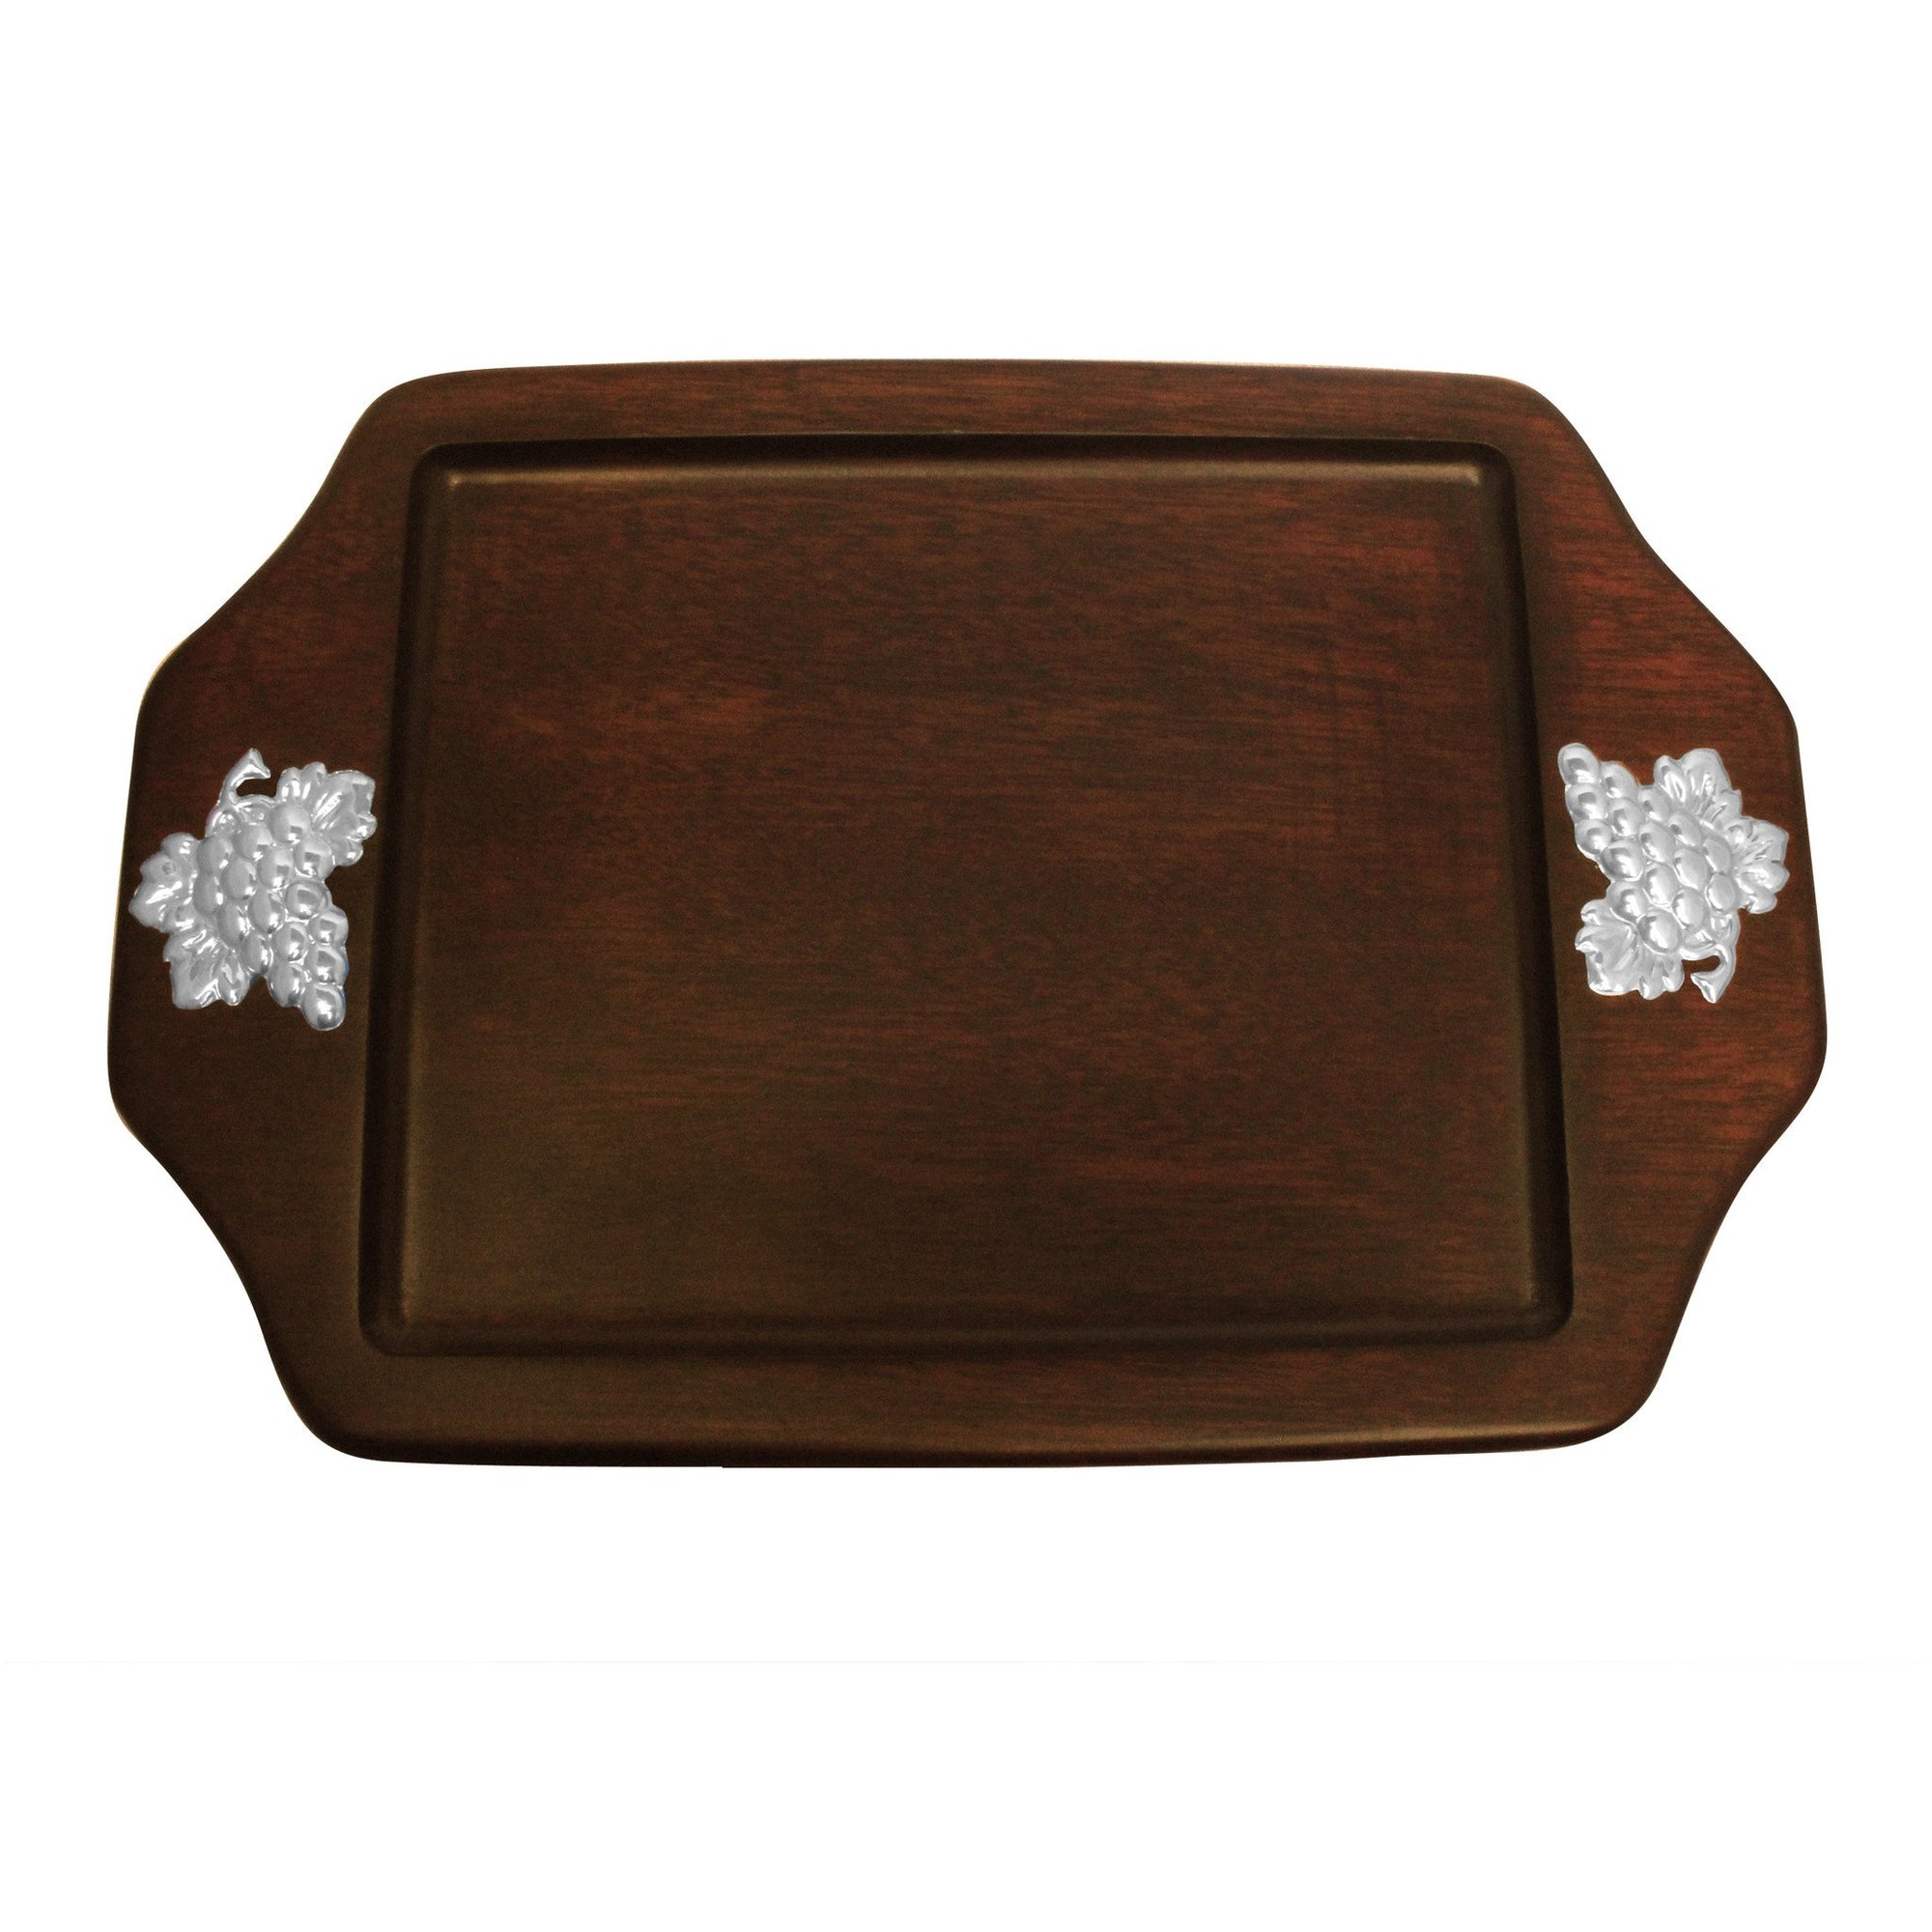 Serving Tray with Sterling Silver Grapes Accent - Qinti - The Peruvian Shop